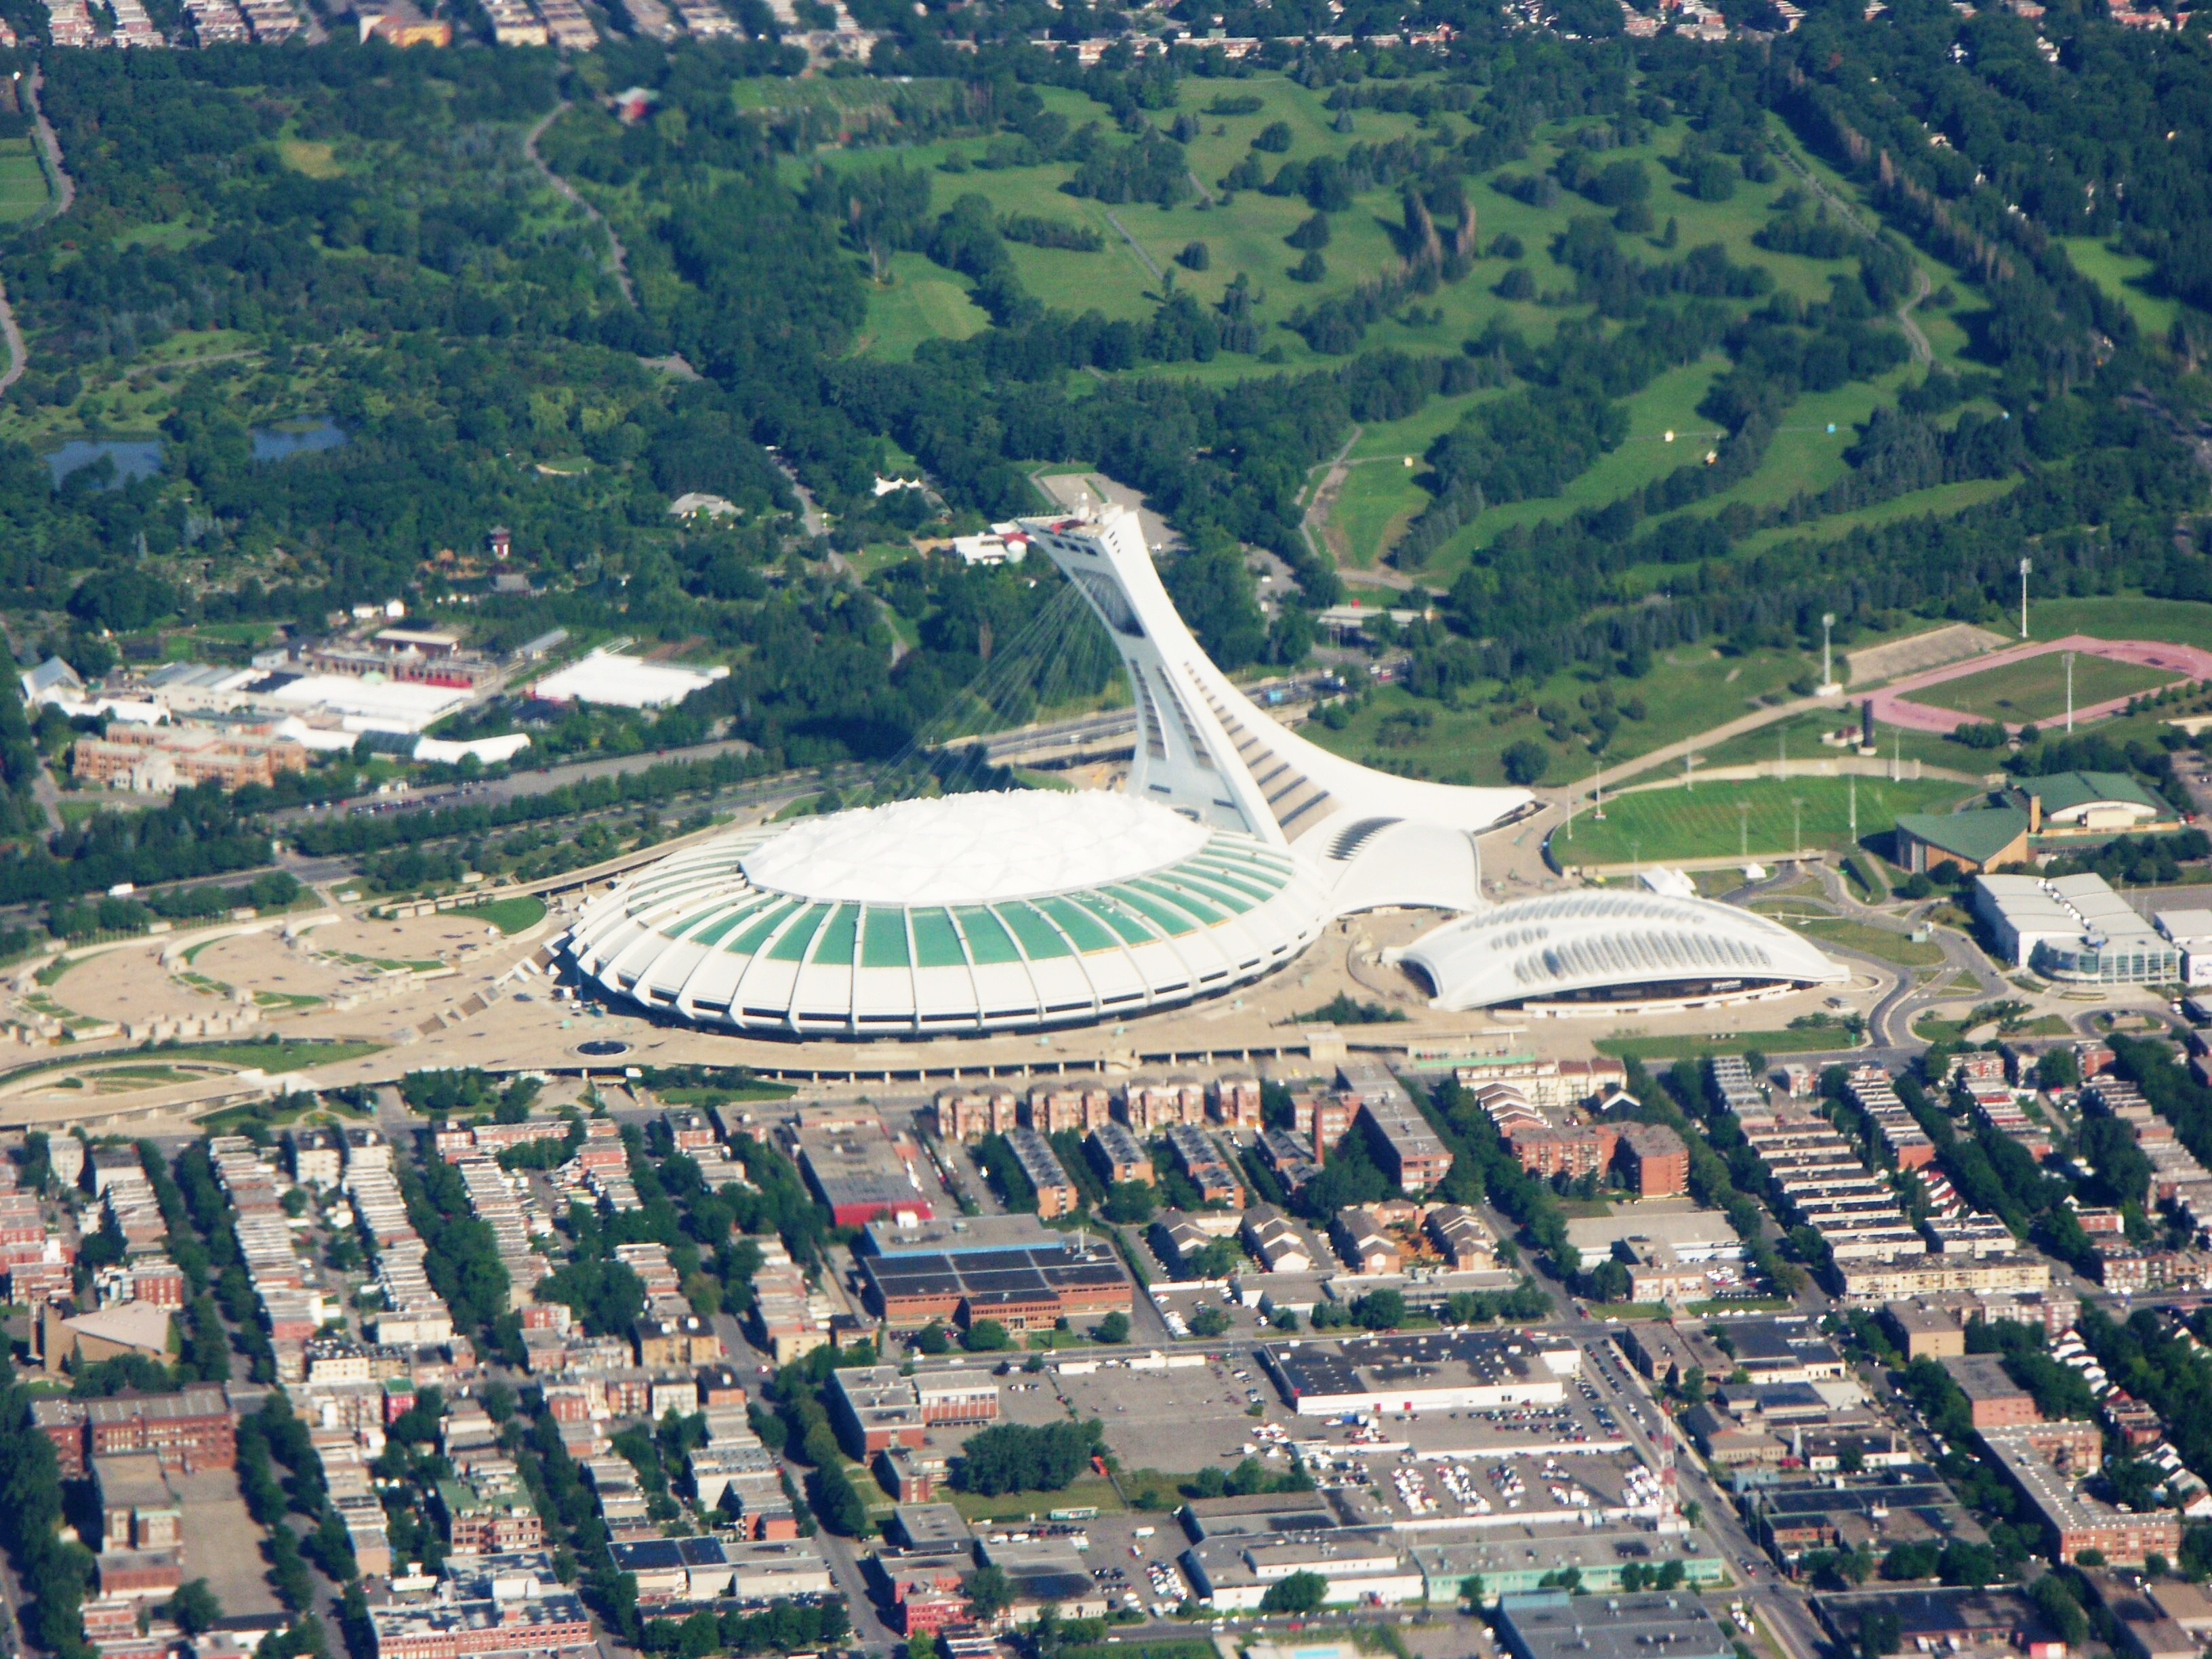 Montreal Games 1976 1976 Montreal Olympics